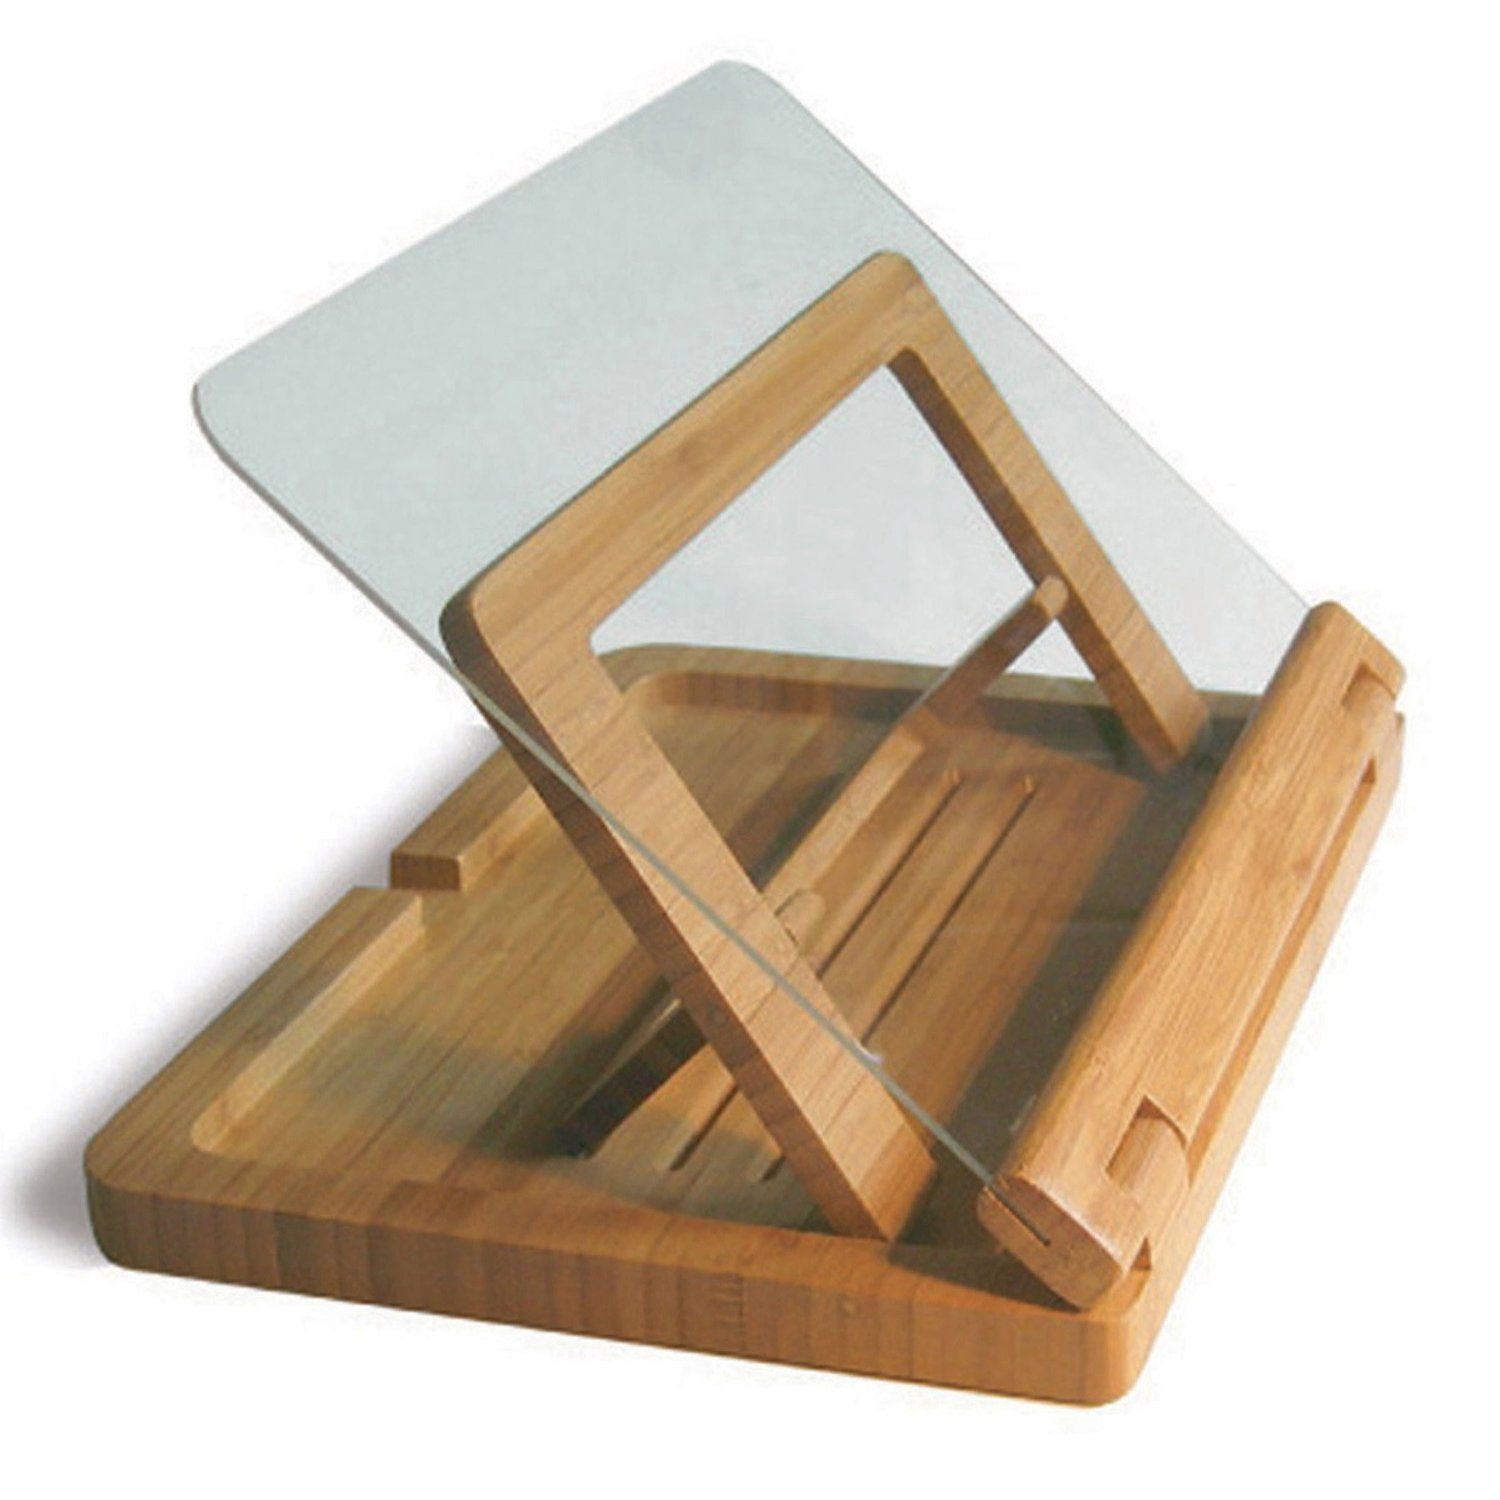 Bamboo Cook Book Holder I Need This Cookbook Holder Cookbook Holder Book Stands Wood Book Stand